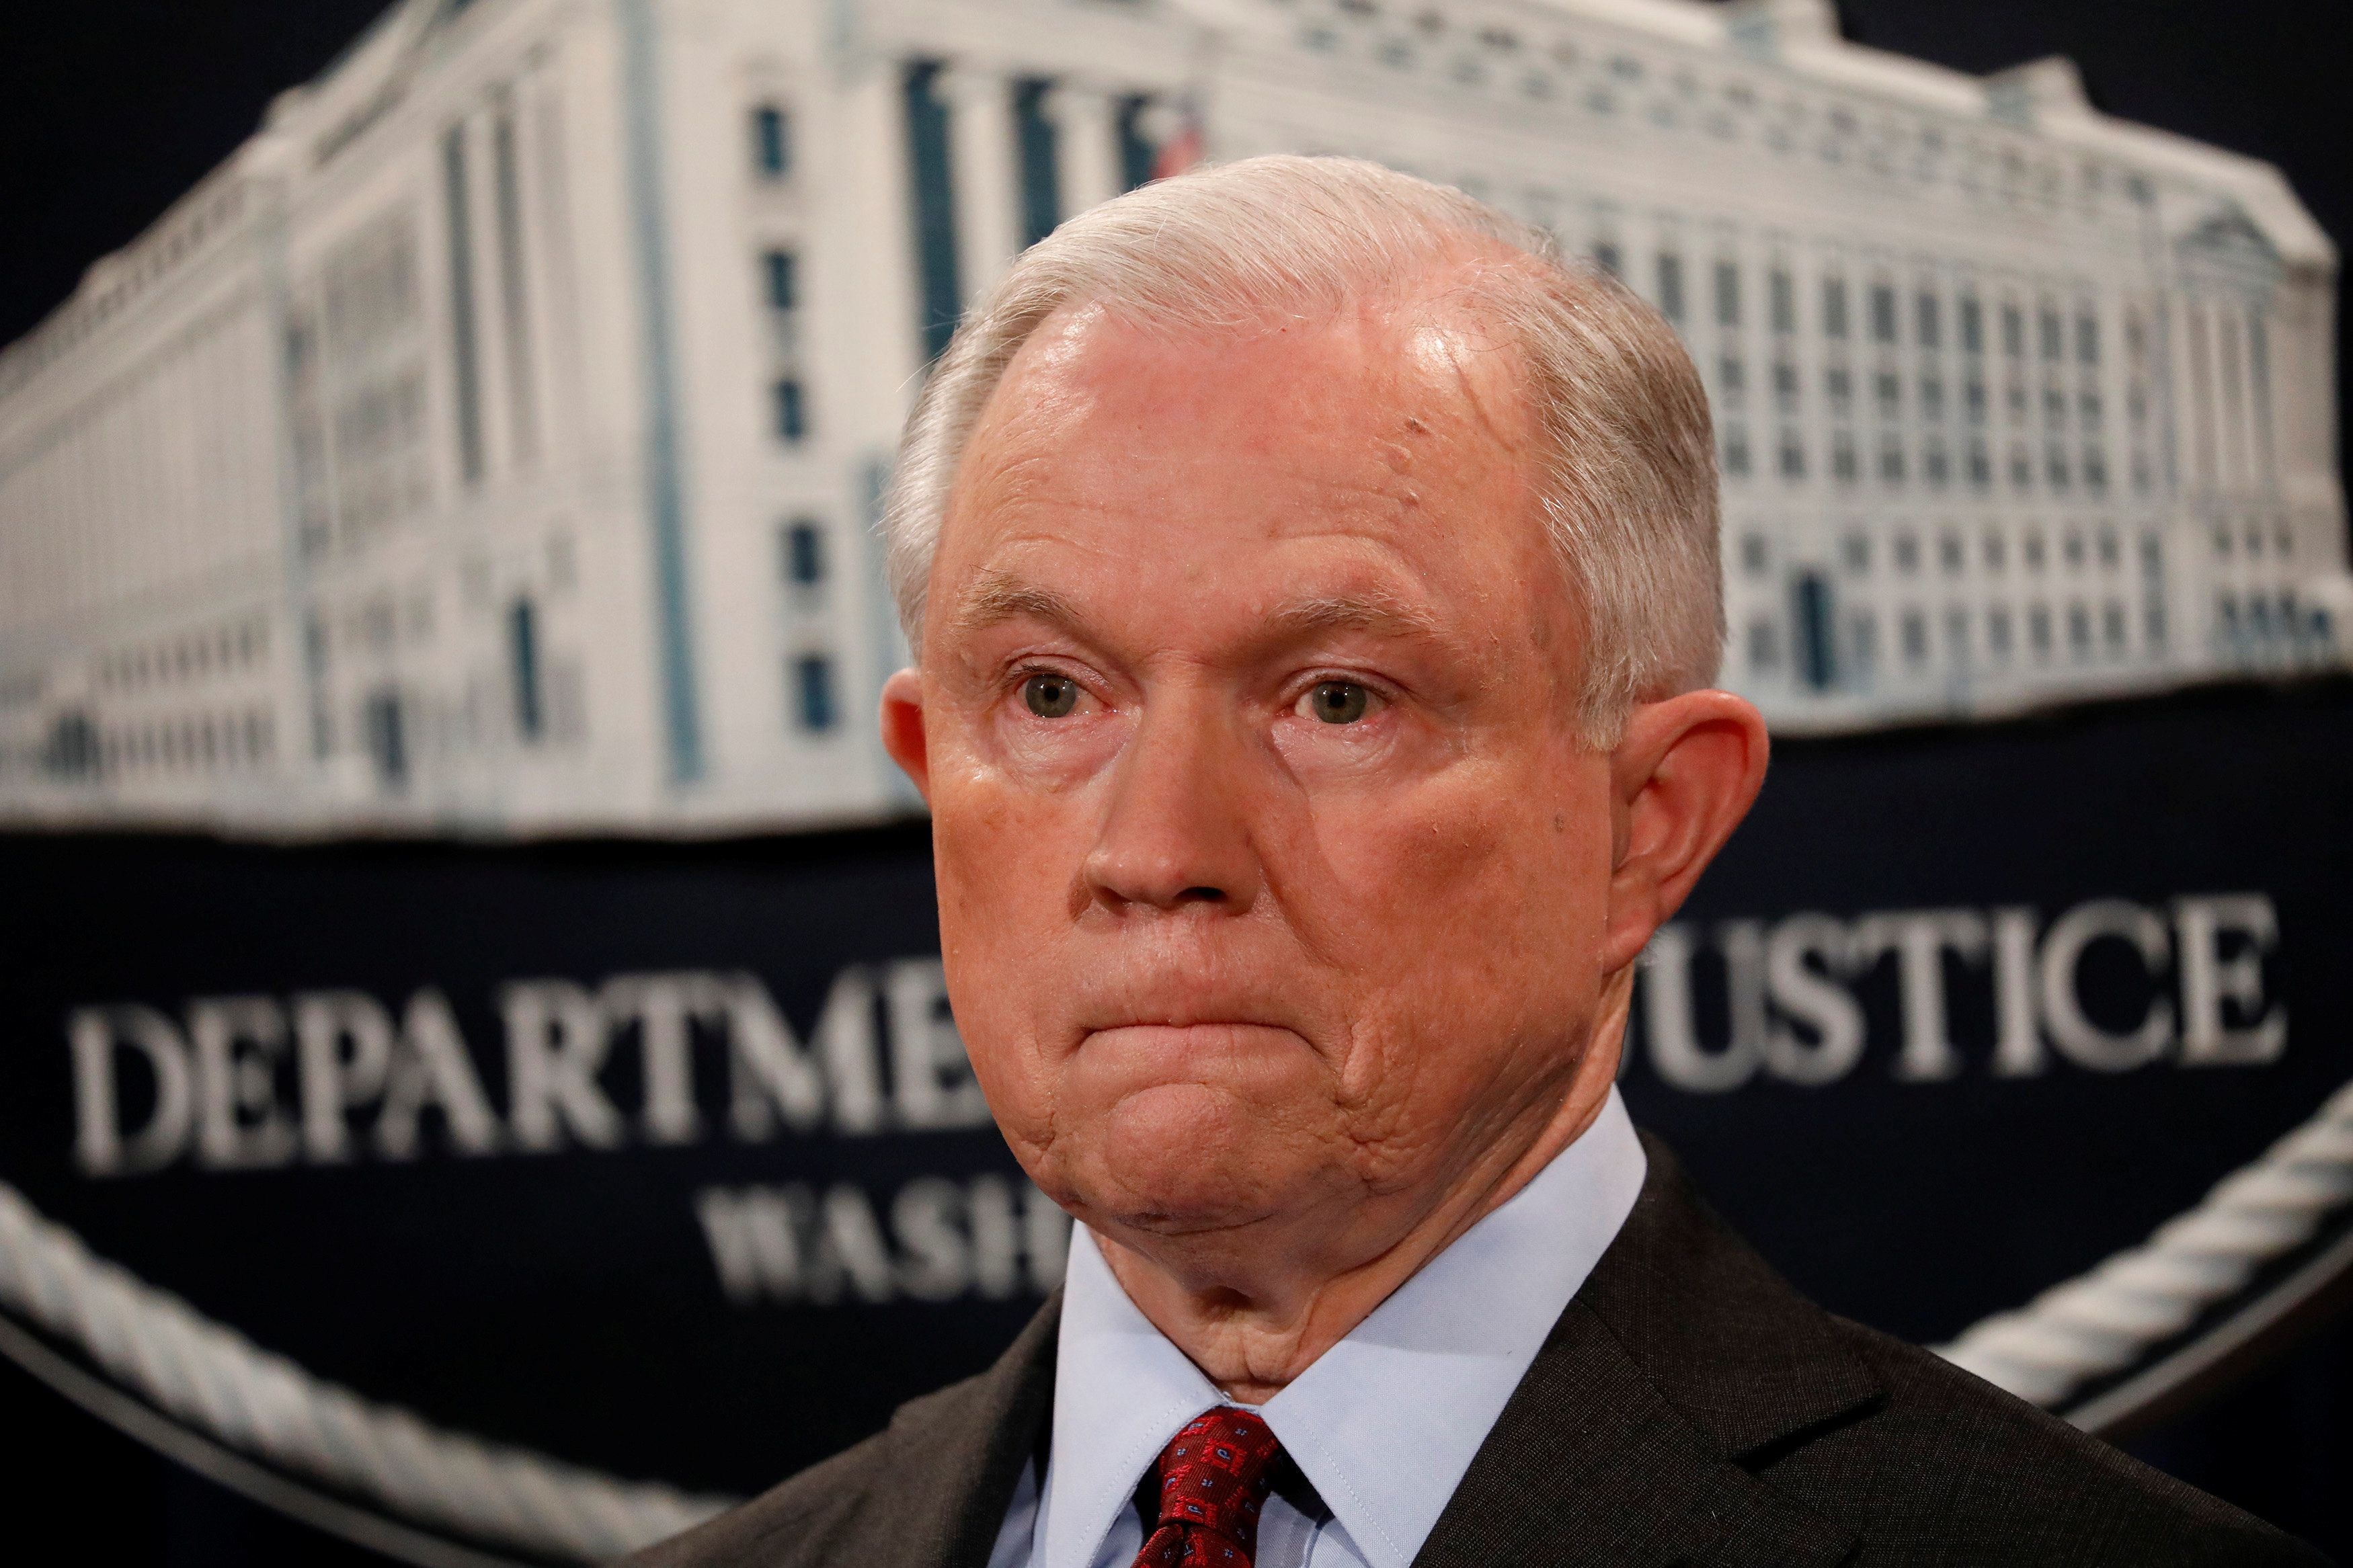 LGBTQ rights groups slammed Attorney General Jeff Sessions for rescinding an Obama era directive that protected transgen